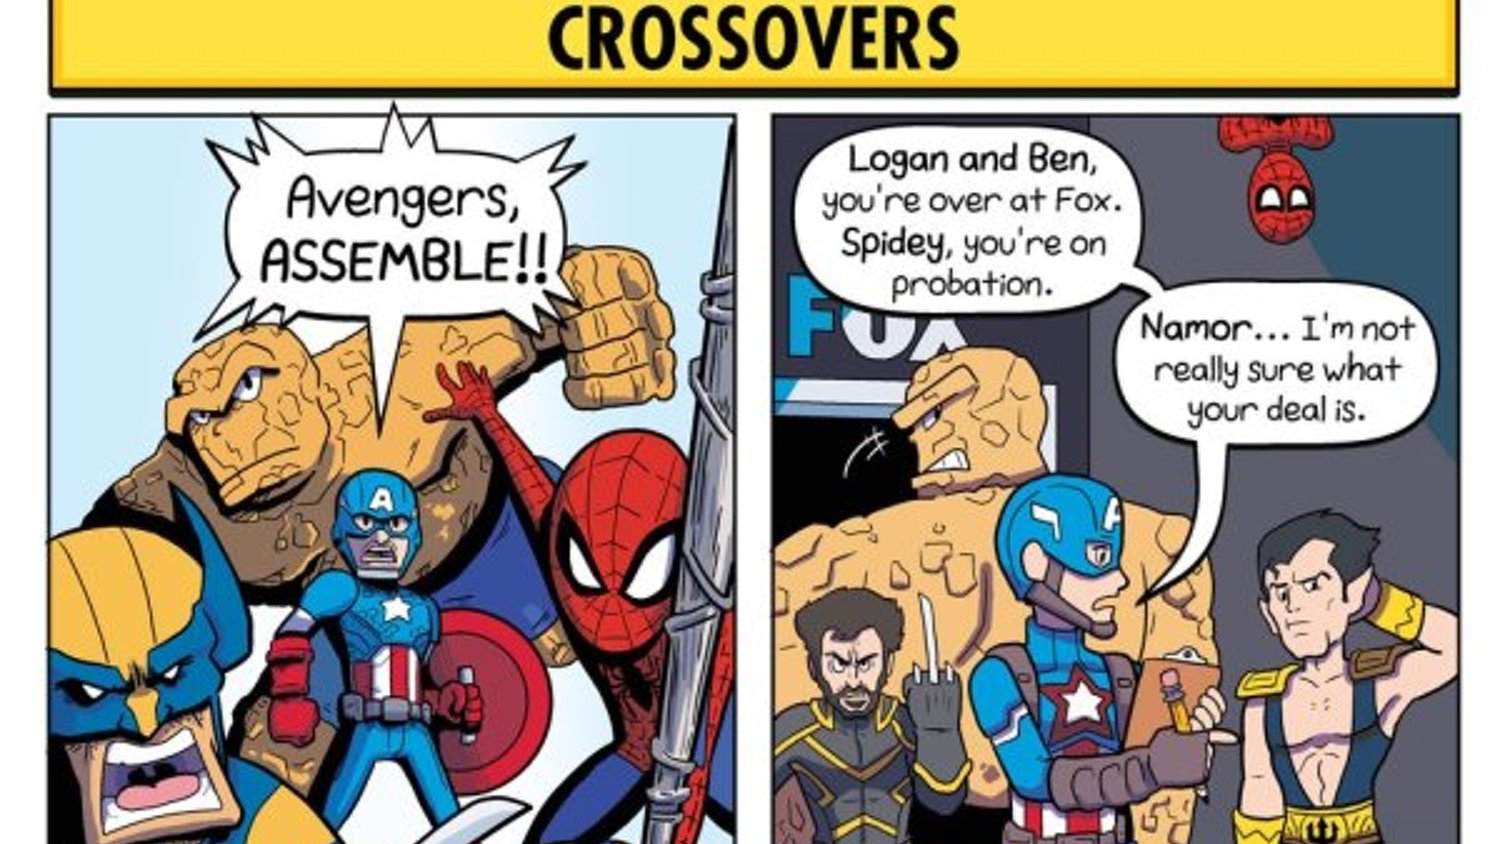 Amusing Comic Strip Highlights the Differences of Marvel Comics Vs. Marvel Movies